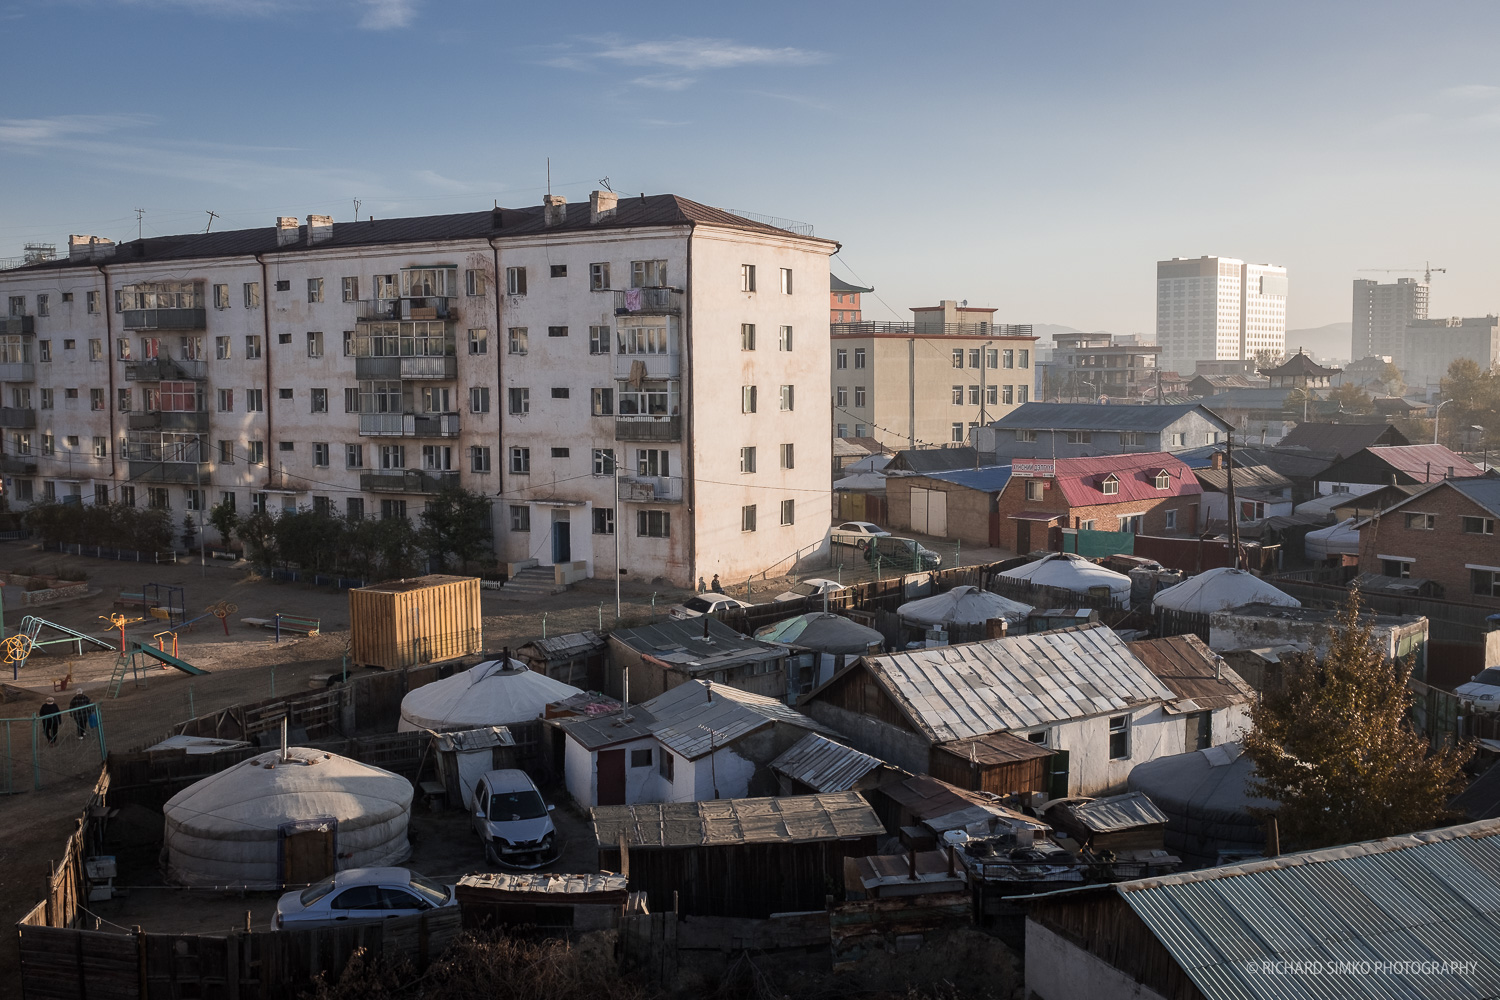 This is Ulaanbaatar how I expected to see it. Block of residential buildings built in conservative Russian style with space in between filled up with gers.